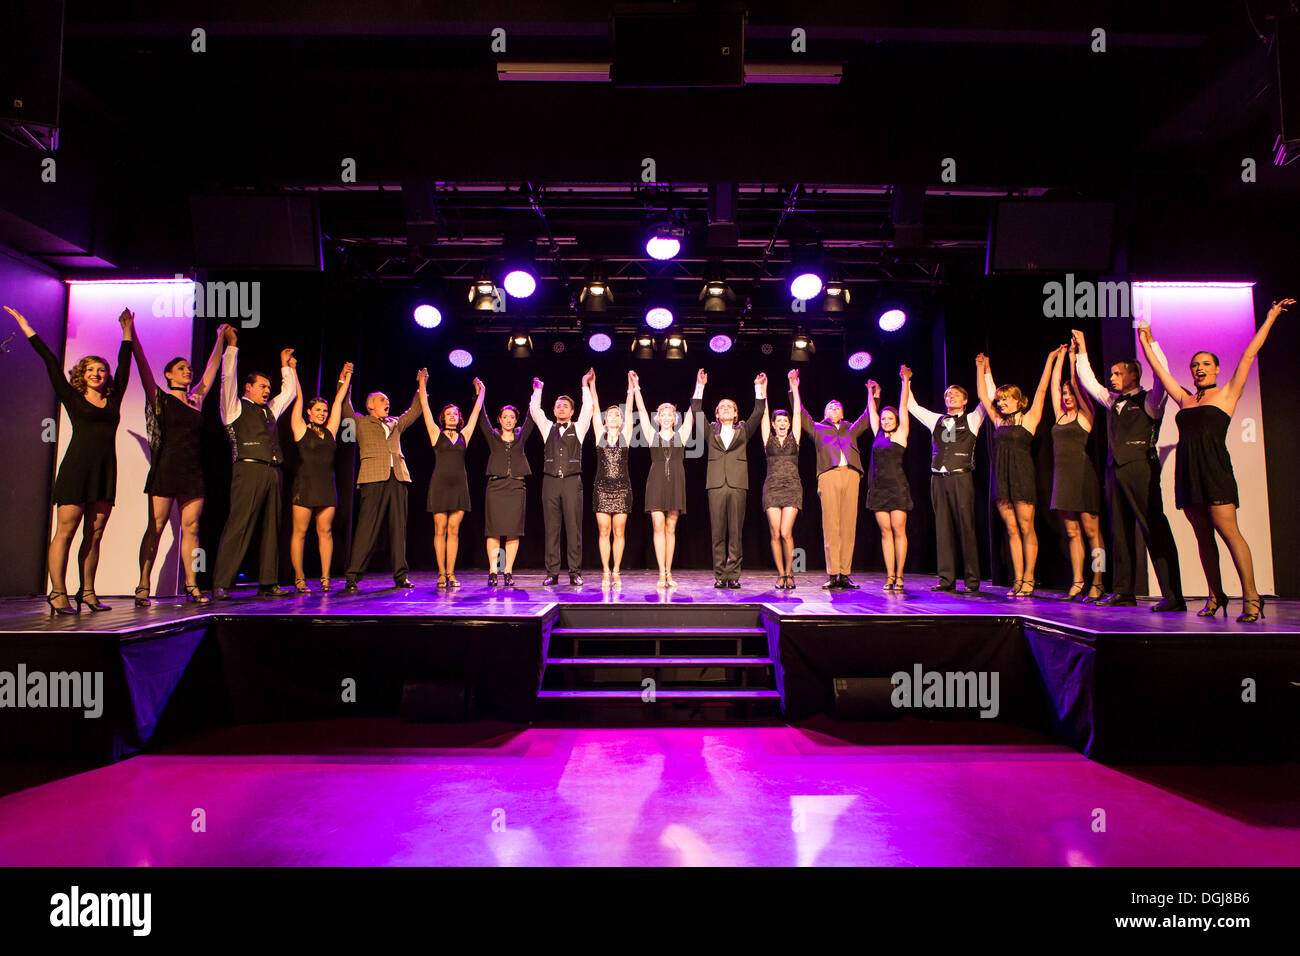 Musical 'Chicago', full cast, live performance, Le Théâtre in Kriens, Lucerne, Switzerland, Europe - Stock Image